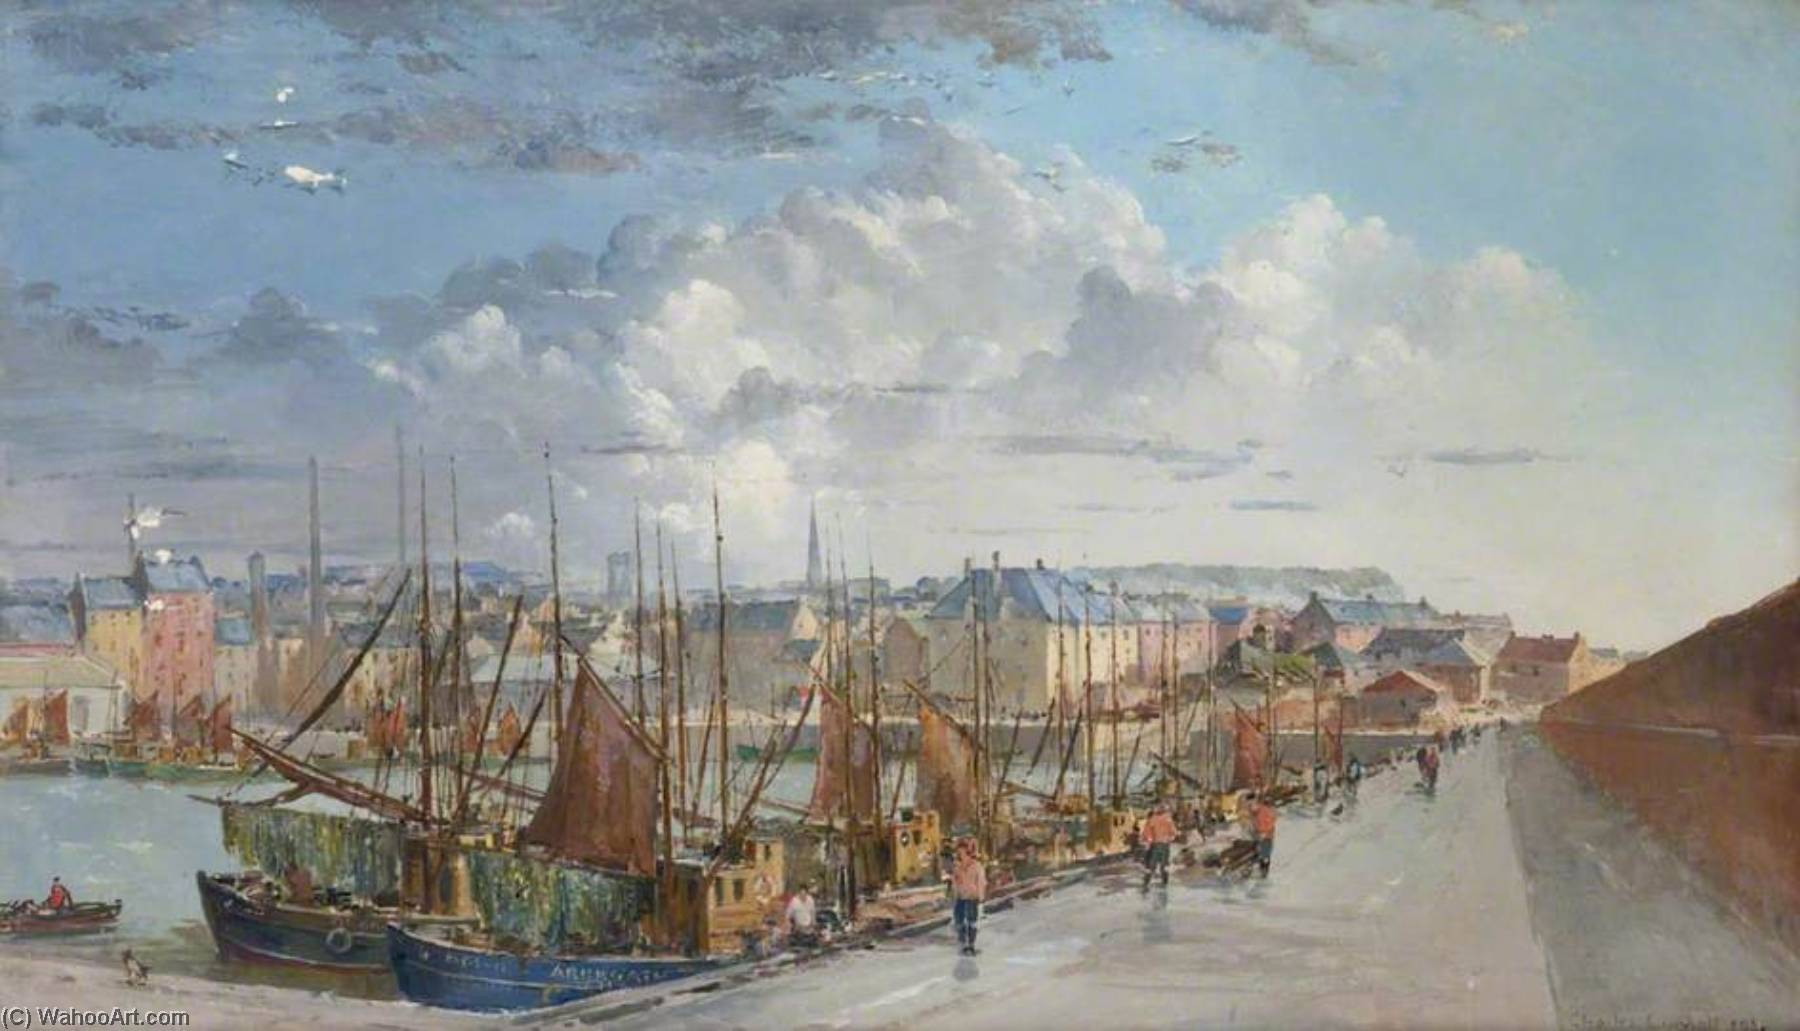 Arbroath Puerto, aceite de Charles Ernest Cundall